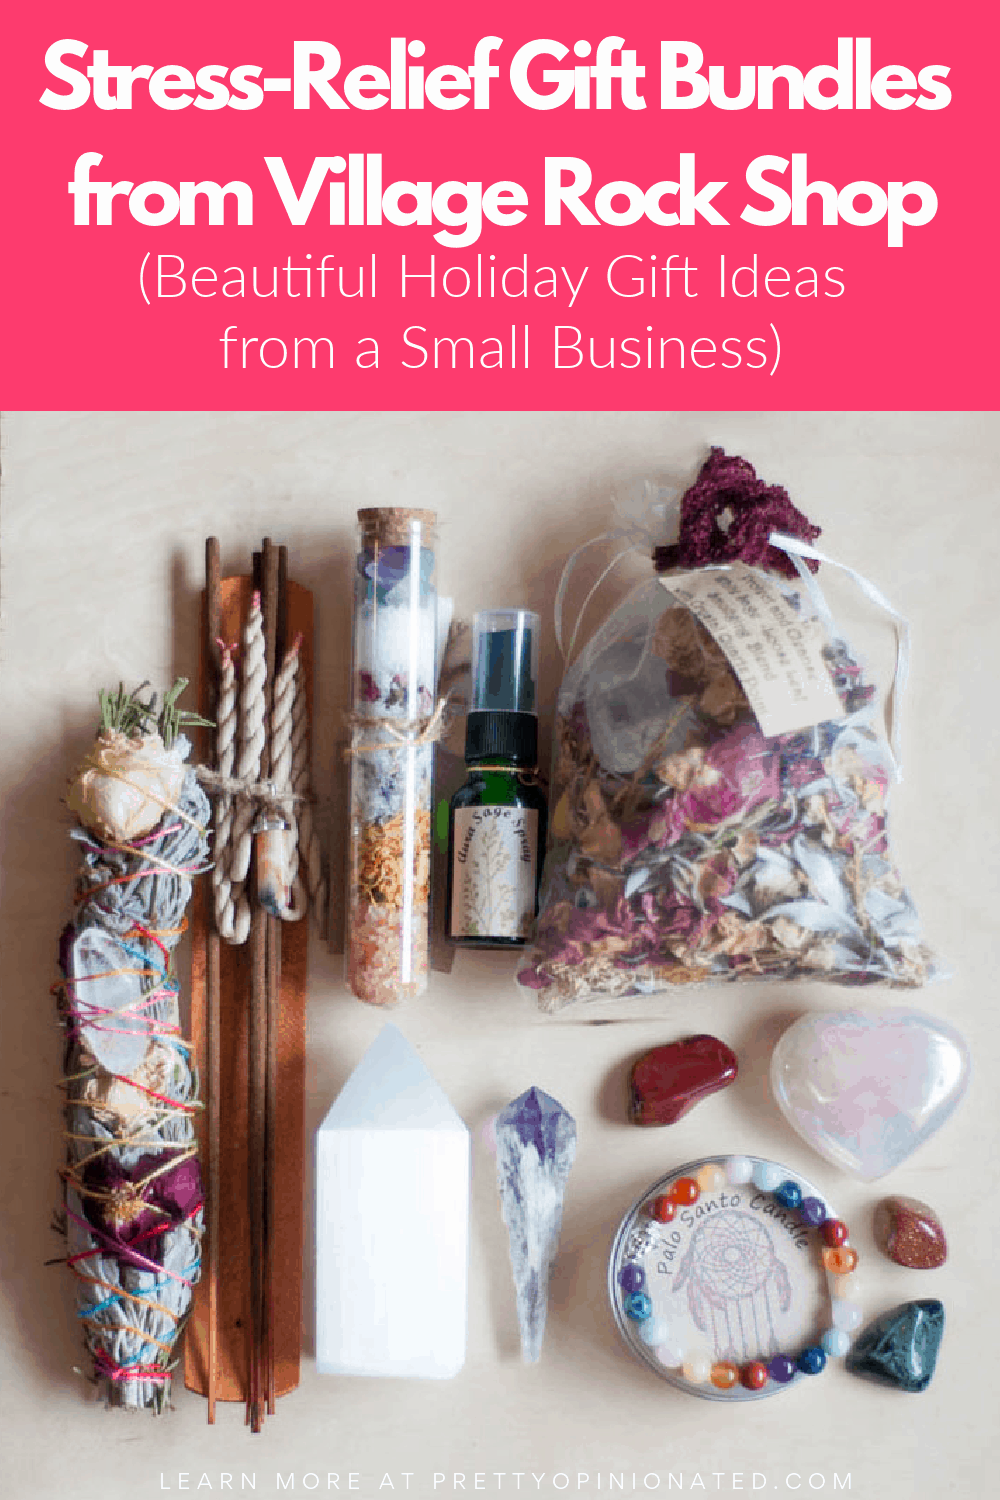 Stress Reliever Gift Bundles from Village Rock Shop: Perfect for 2020 Holidays